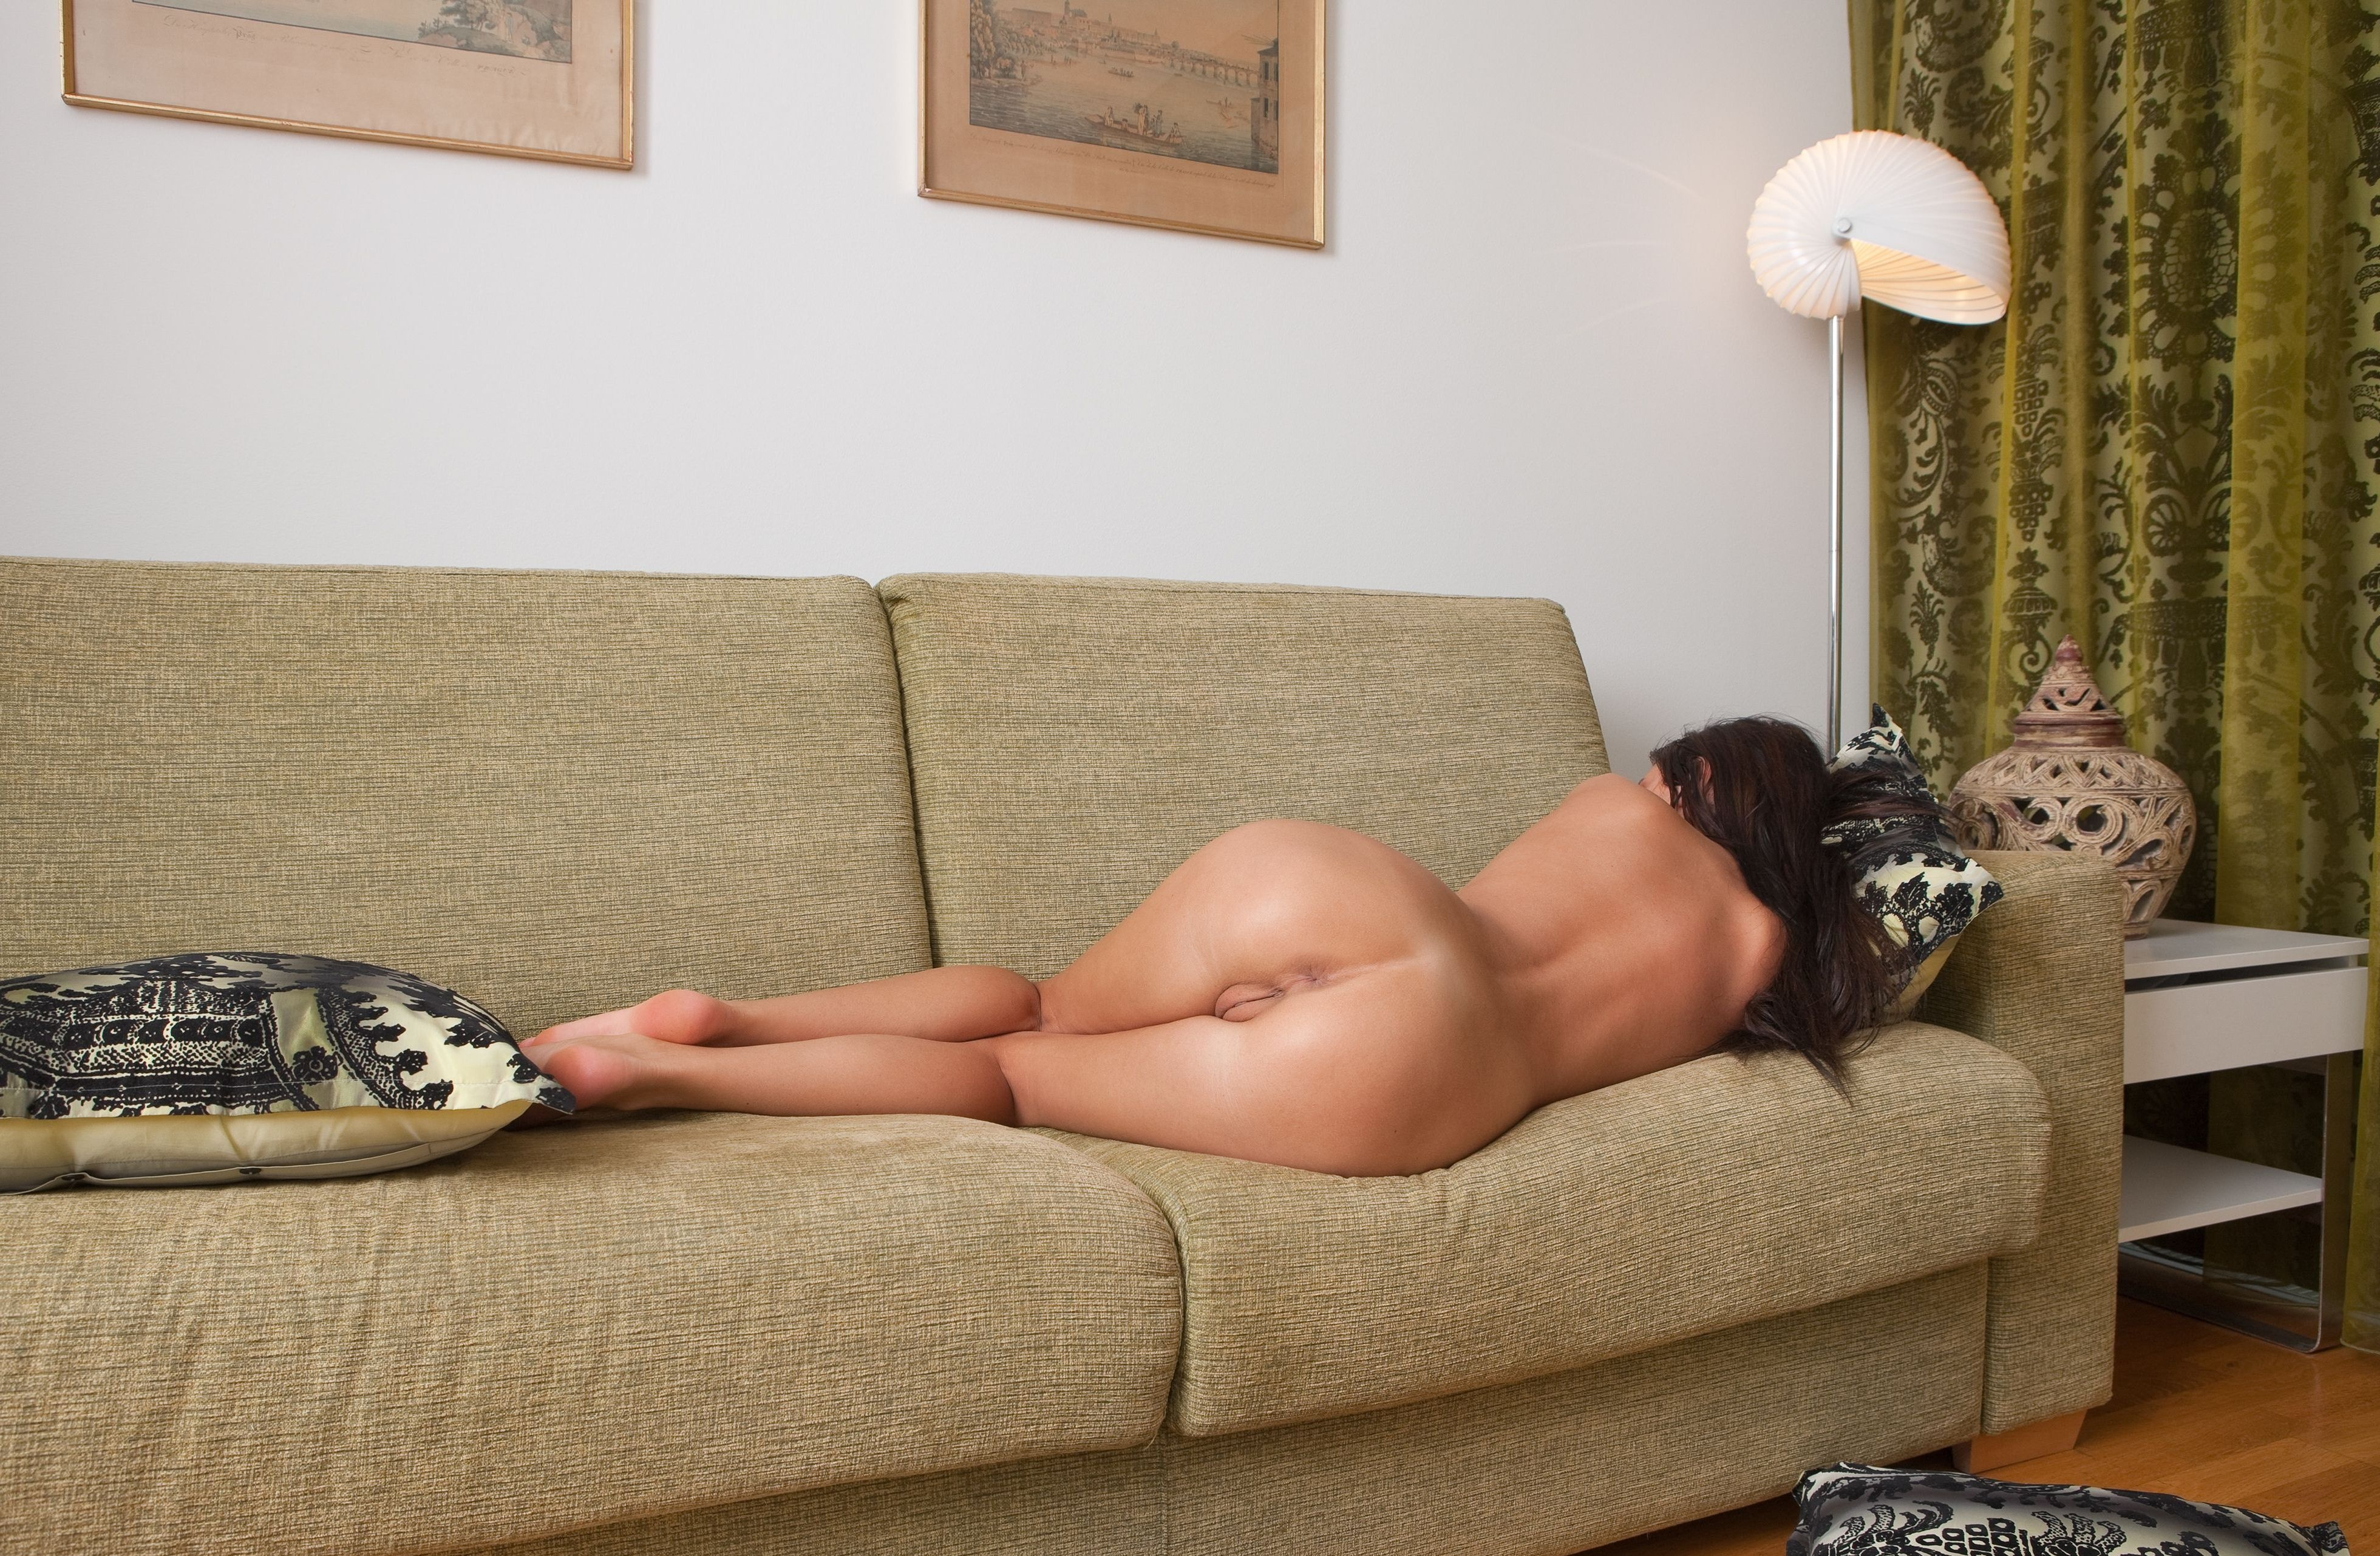 nude asses on couch